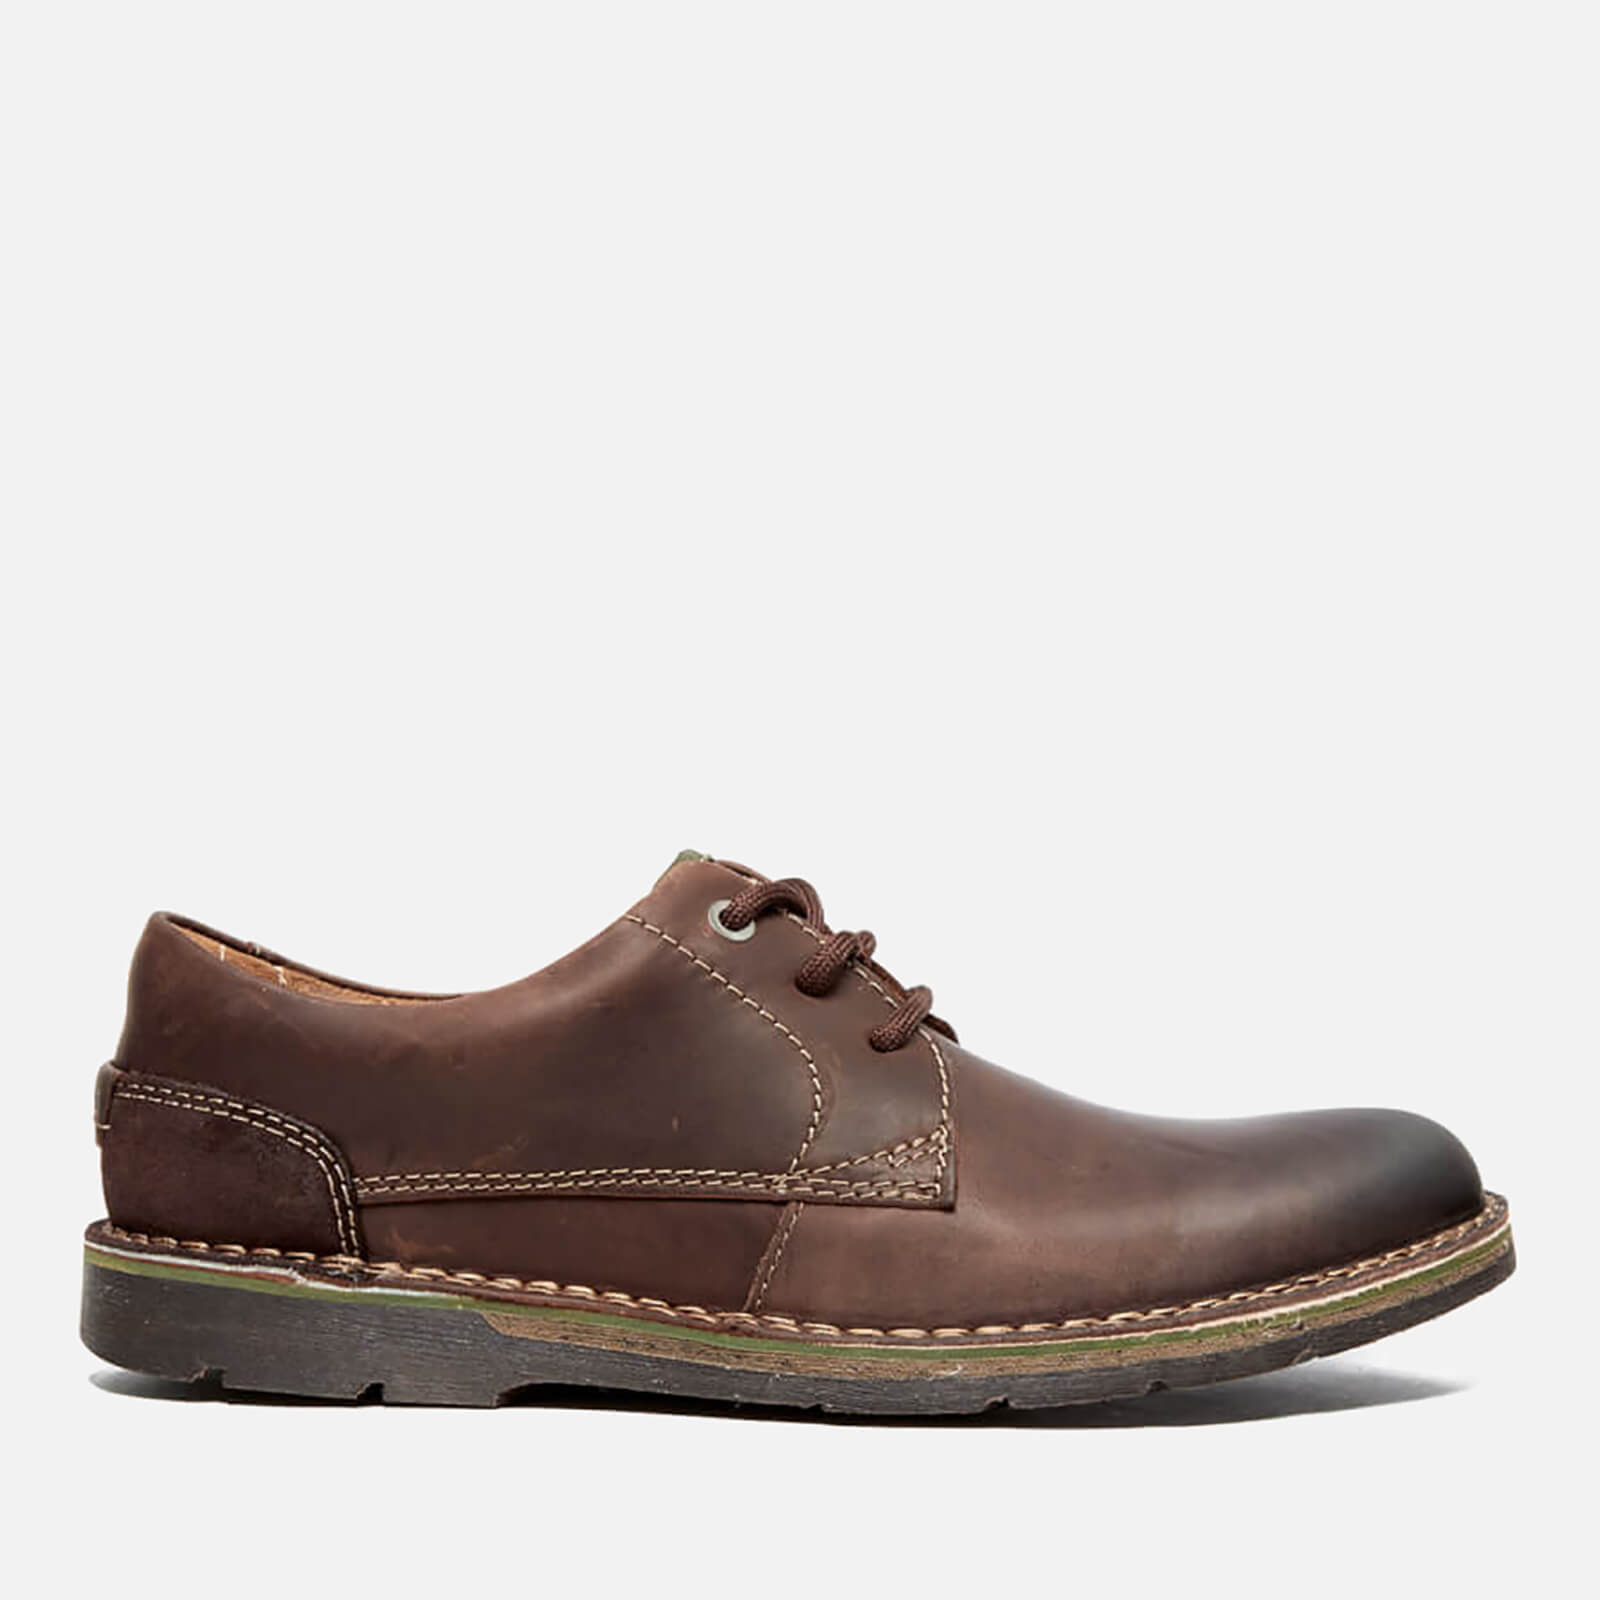 Clarks Men's Edgewick Plain Leather Shoes Dark Brown